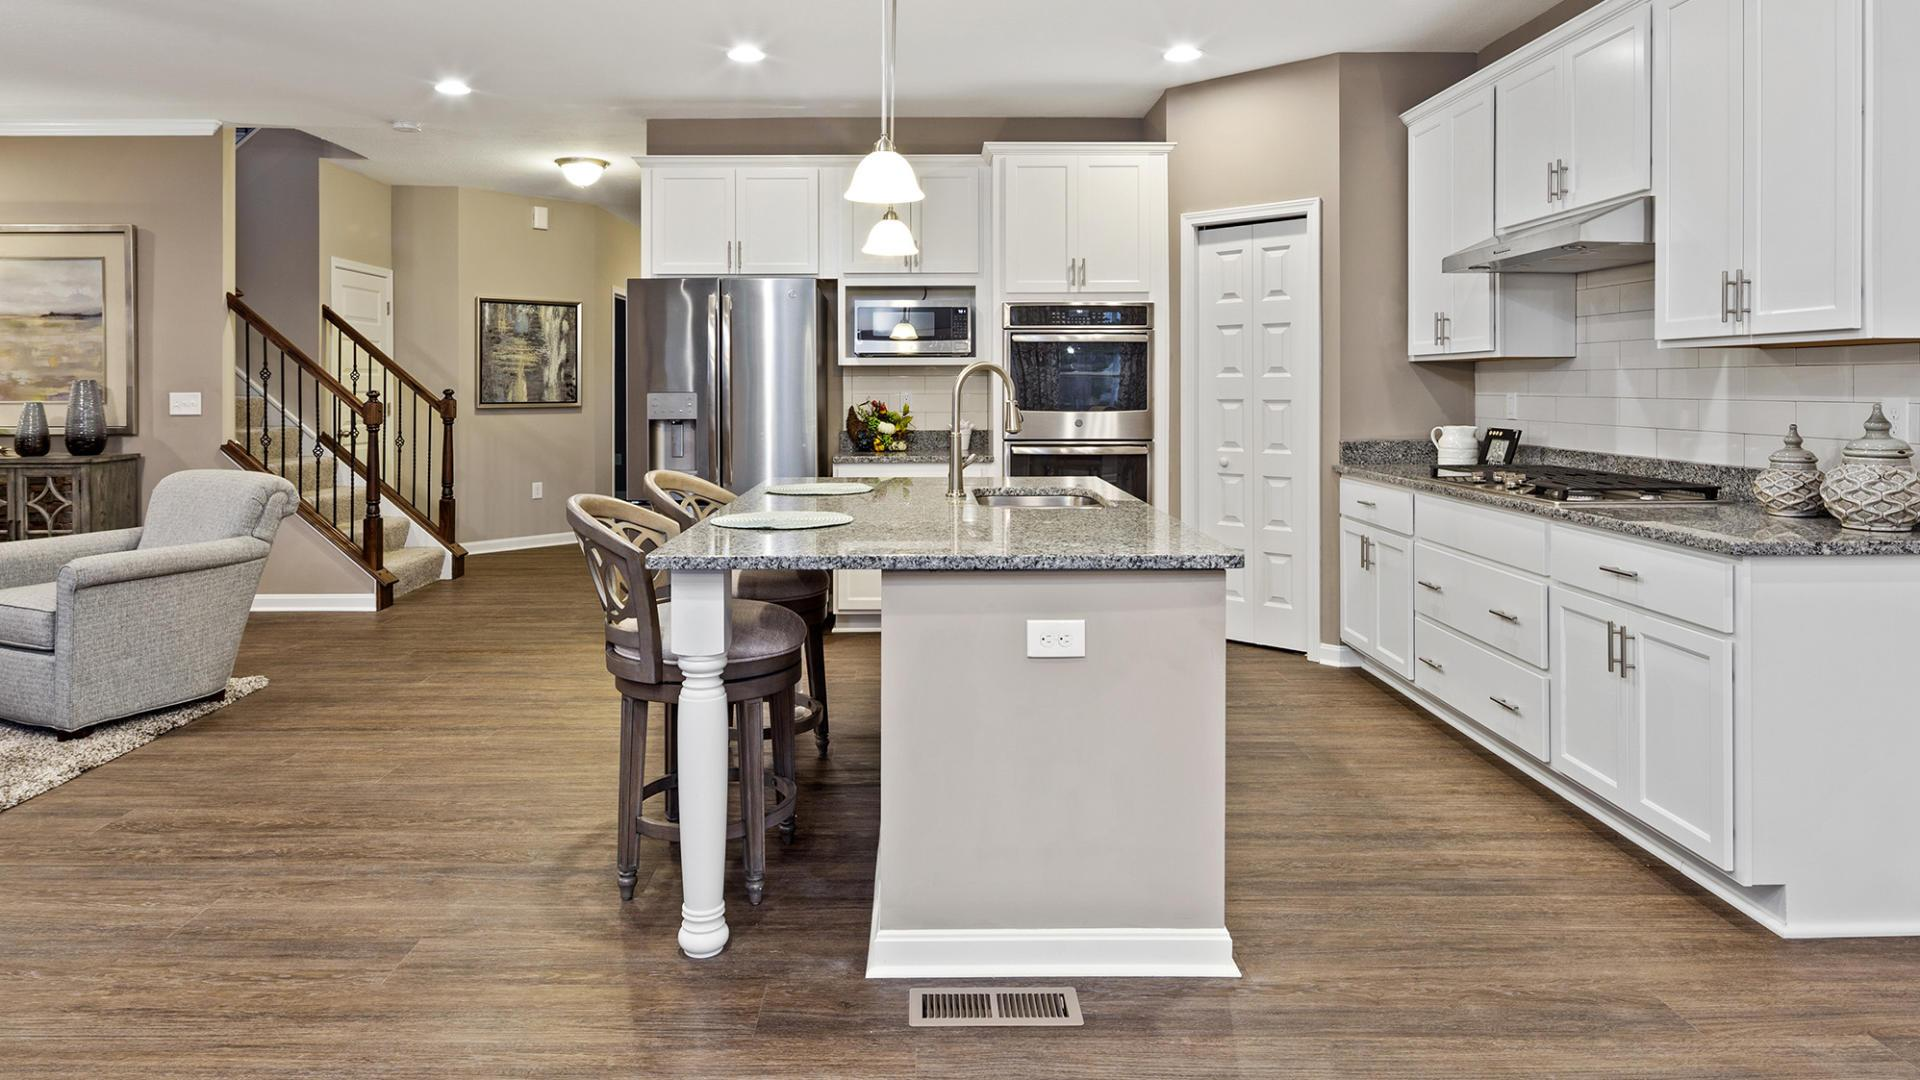 Kitchen featured in the Carlisle By Maronda Homes in Columbus, OH